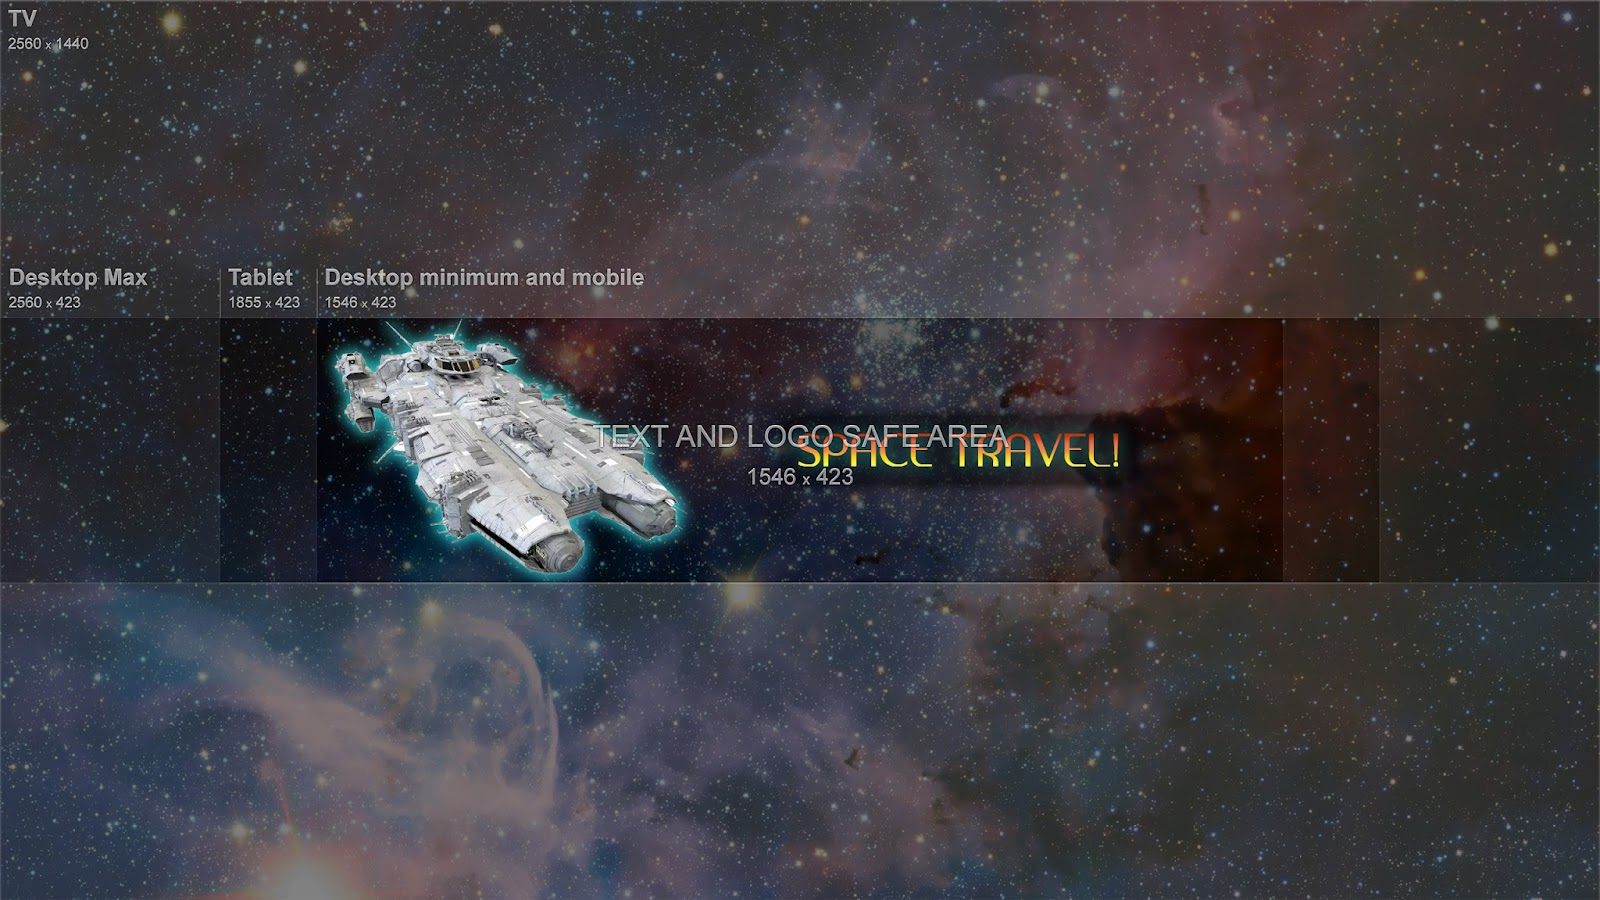 Channel Art Cropping My Whole Banner Into The Safe Area